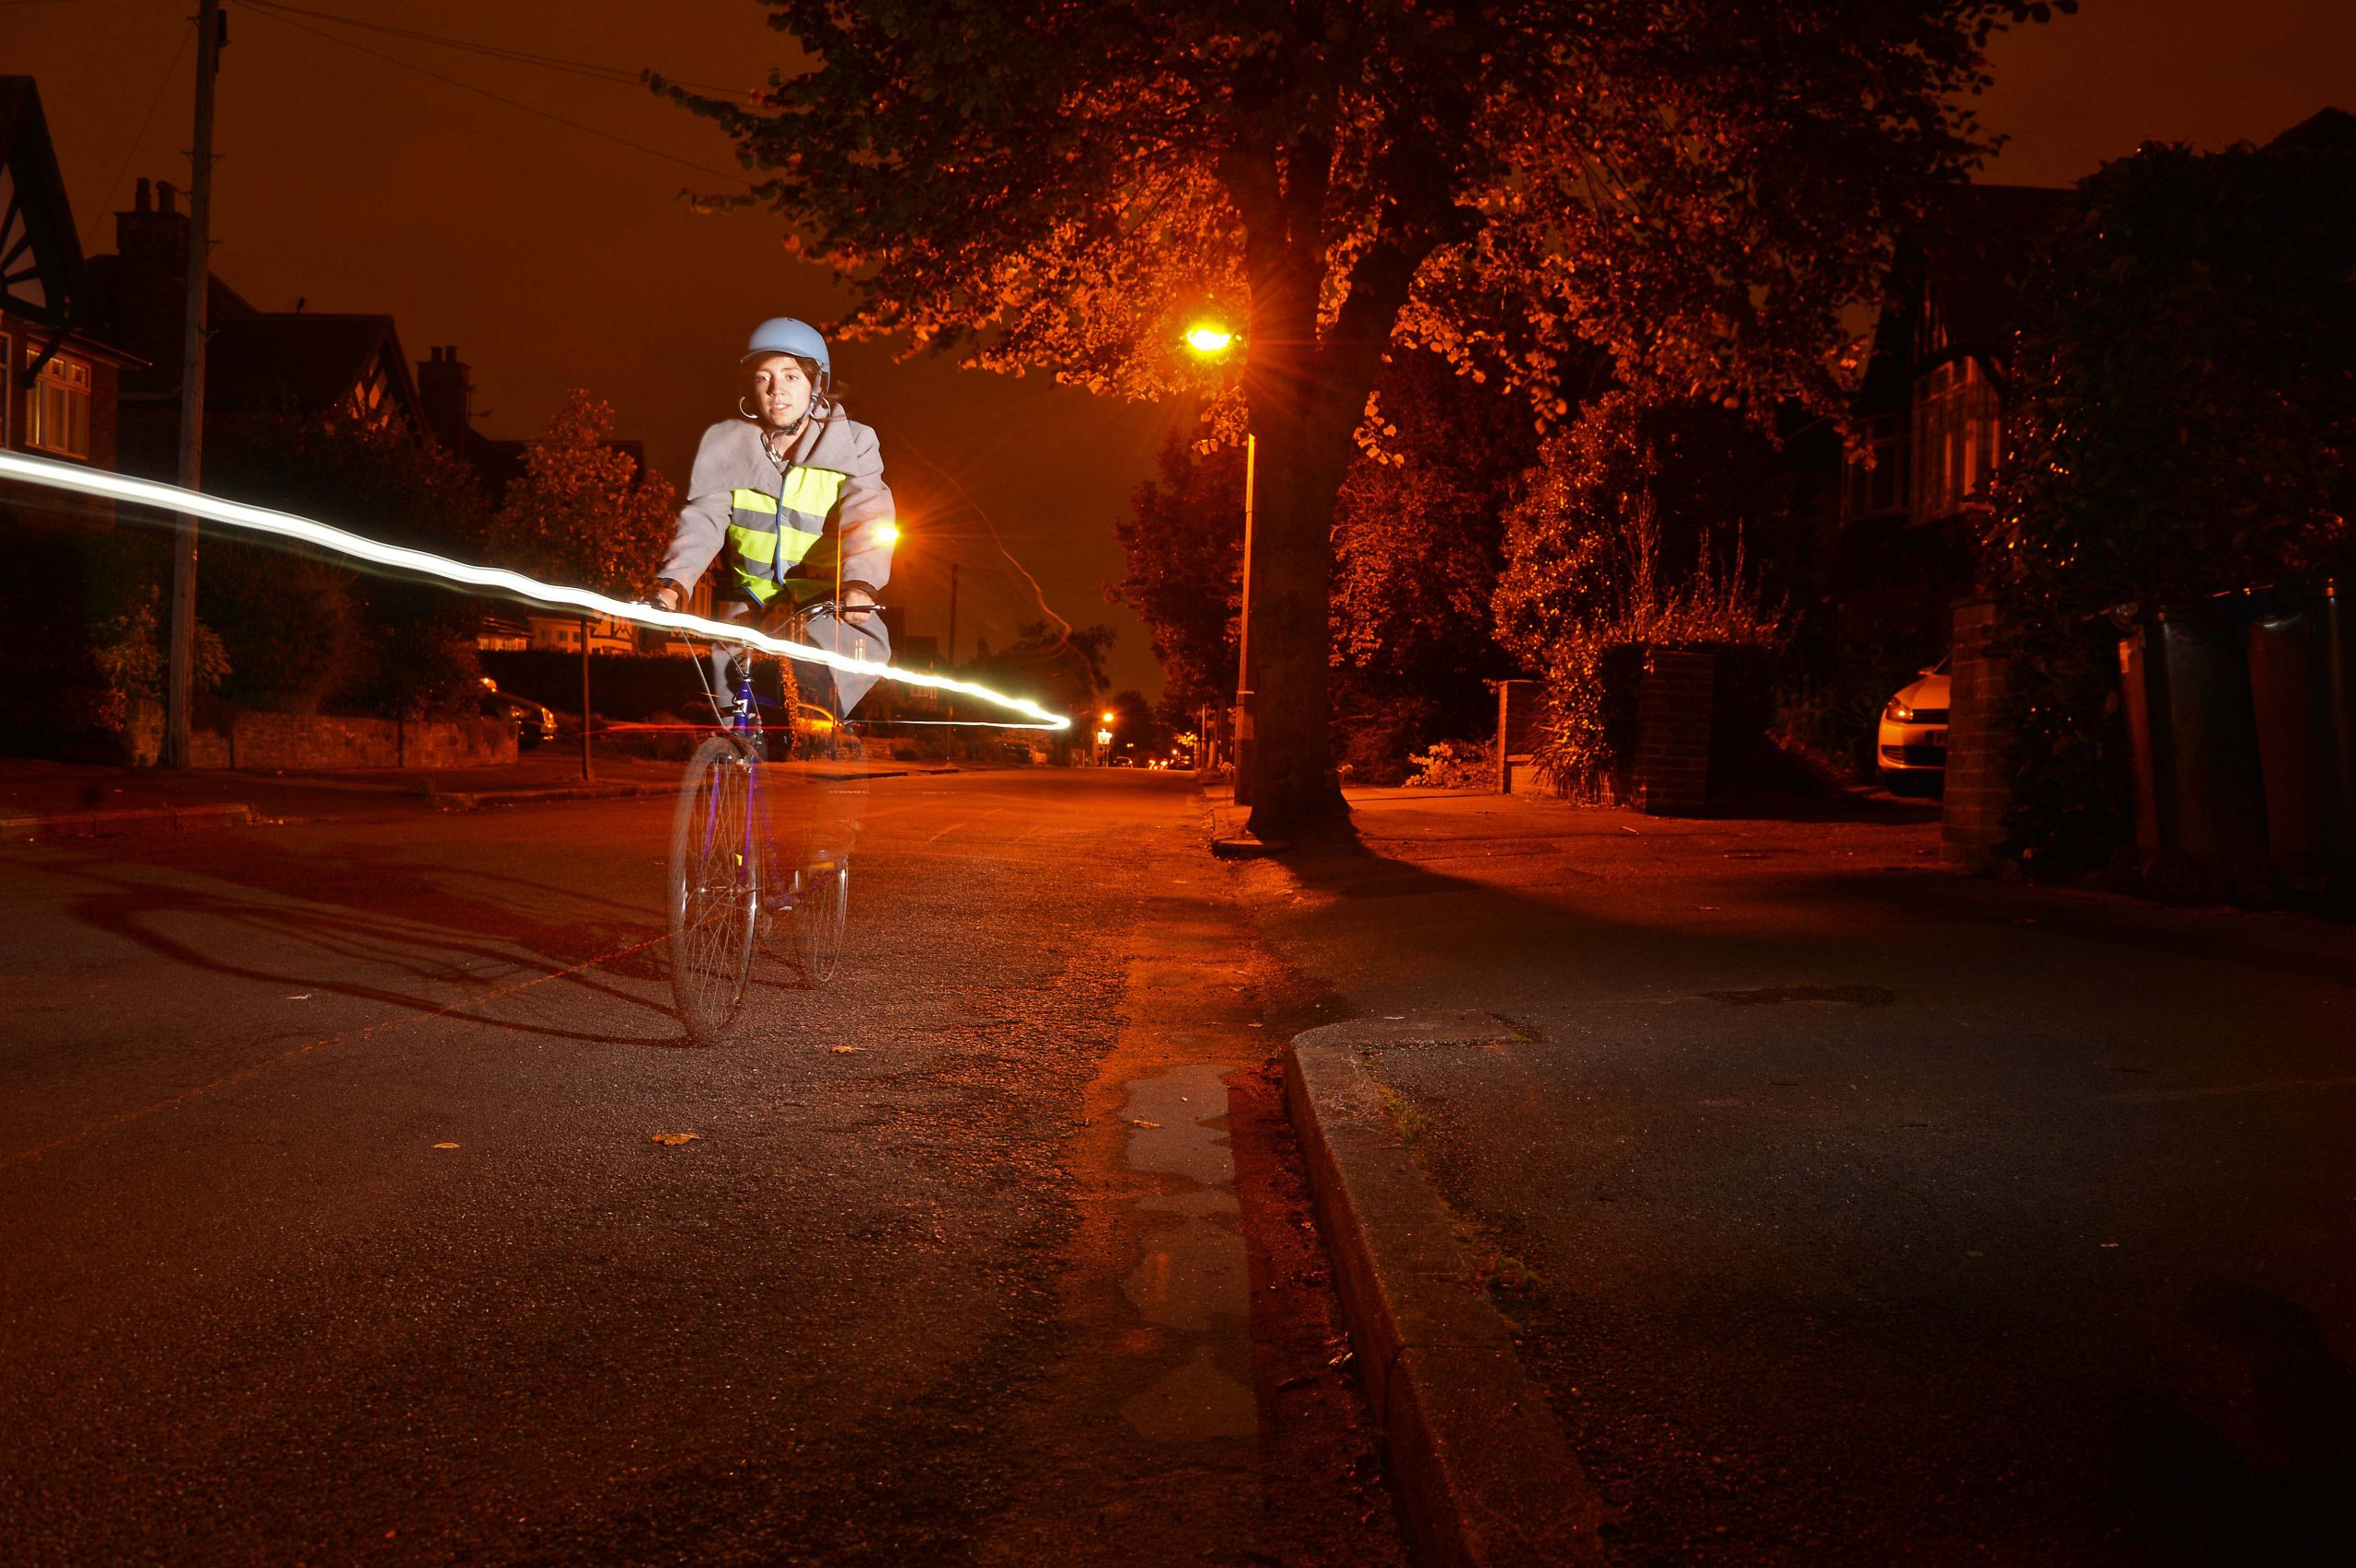 Cycling rideing with lights & Reflective clothing to help them be seen when it's dark